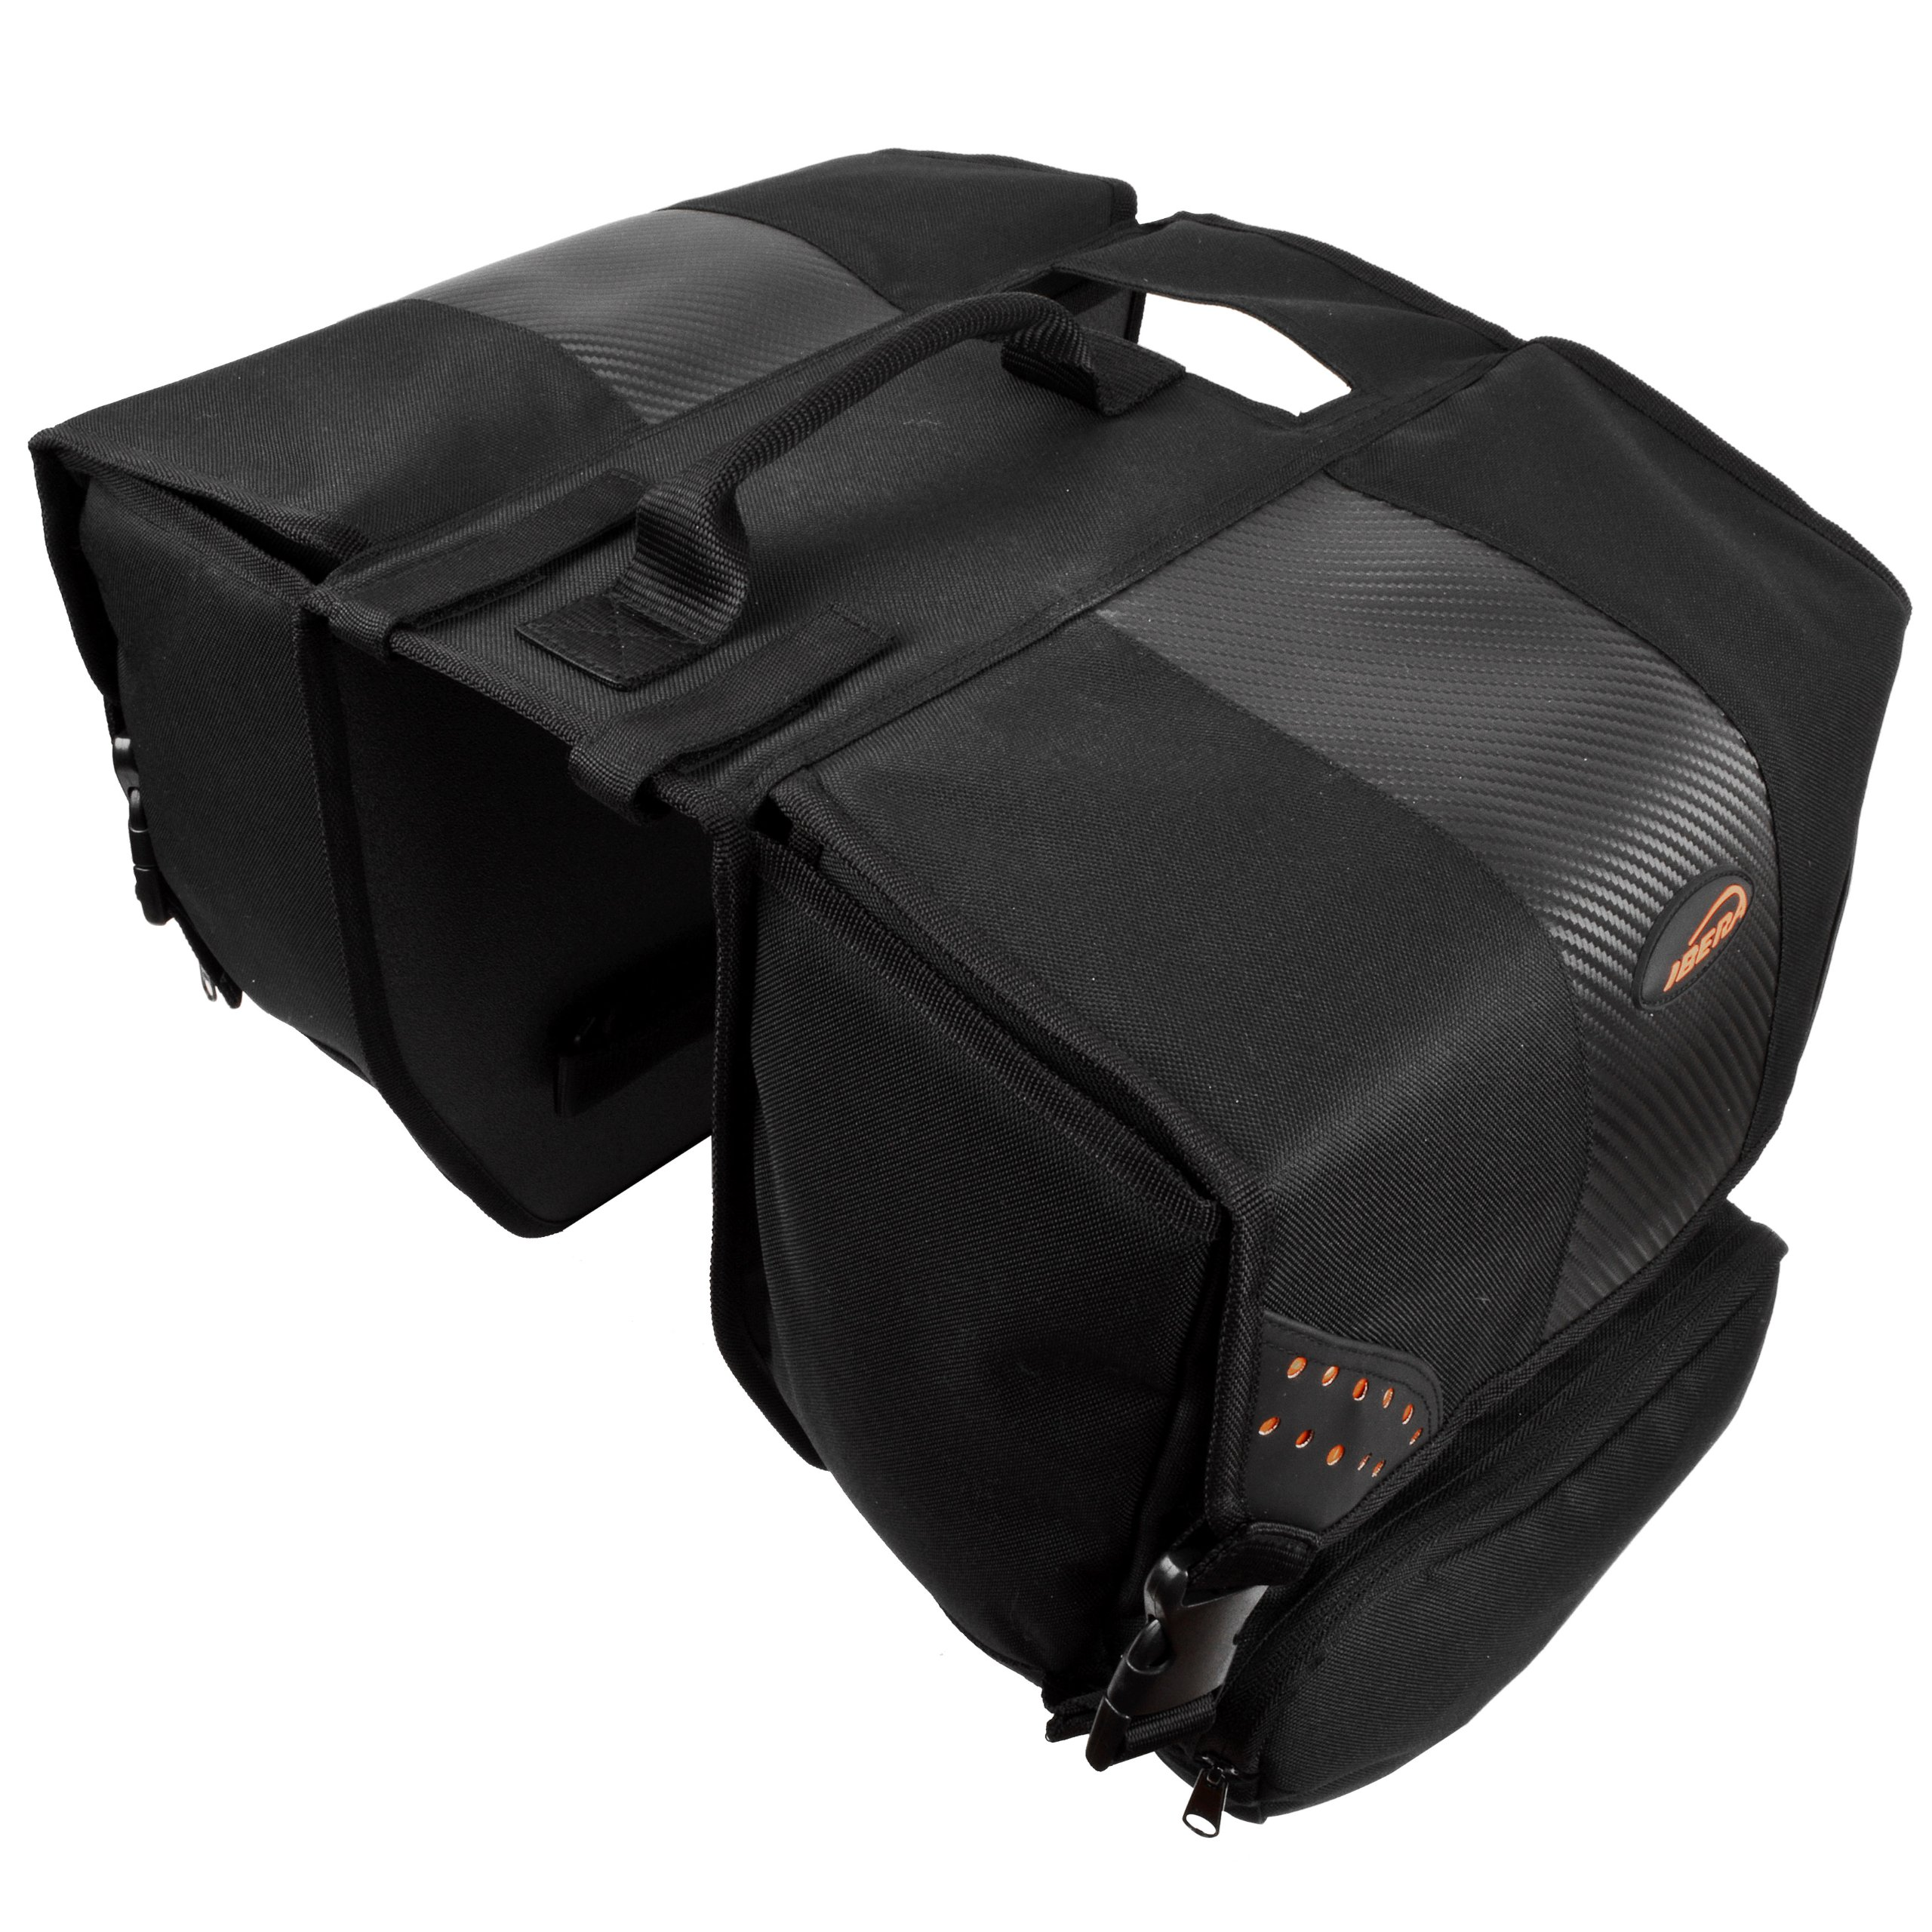 Ibera Bicycle Side-Mounting Pannier Set, Bike Panniers with Multi-Compartments, Slit on Top to Mount on Smaller Racks  by Ibera (Image #5)